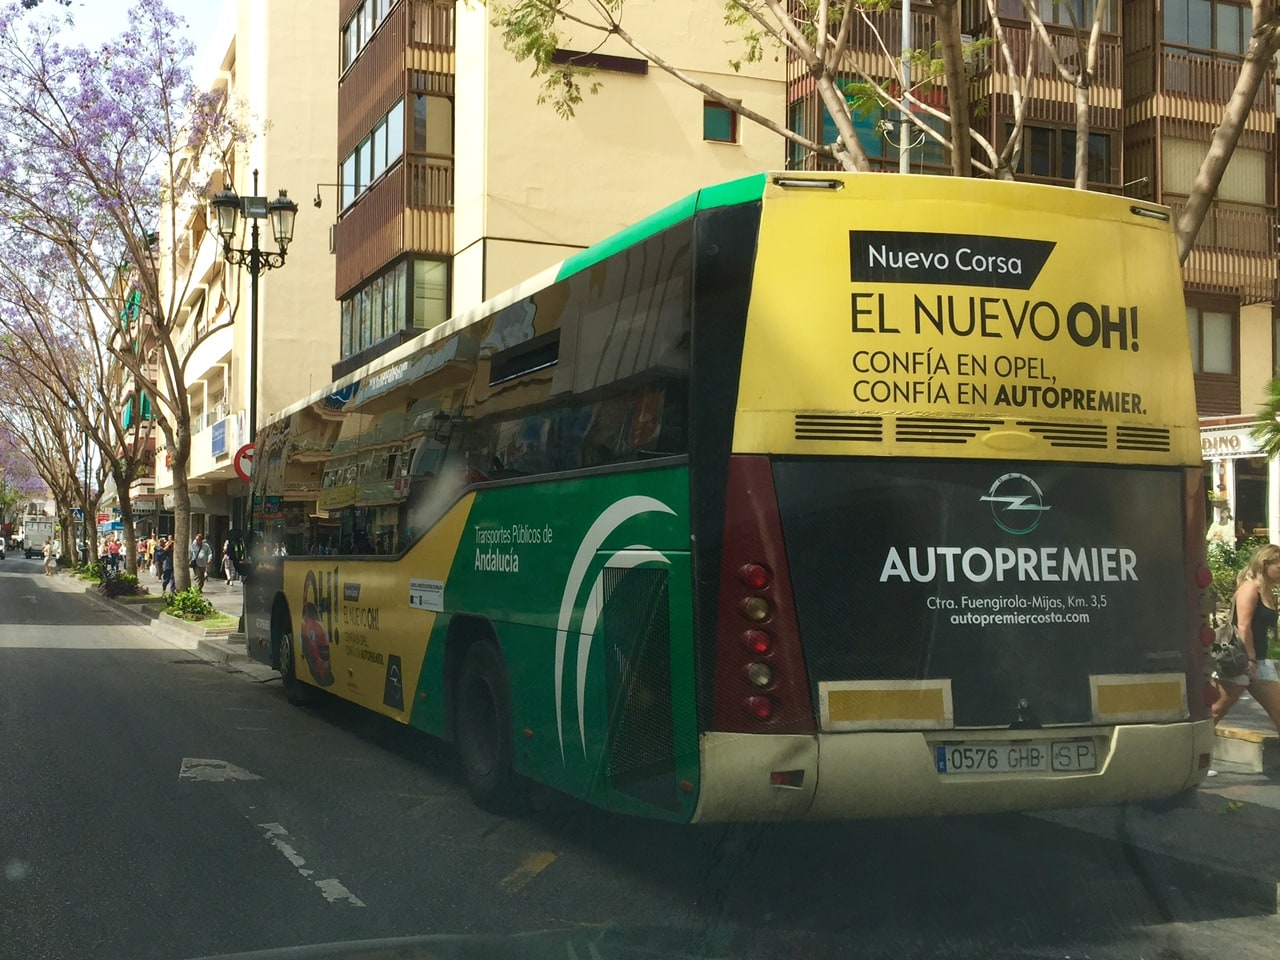 Bus advertising campaign in la Costa del Sol for Autopremier